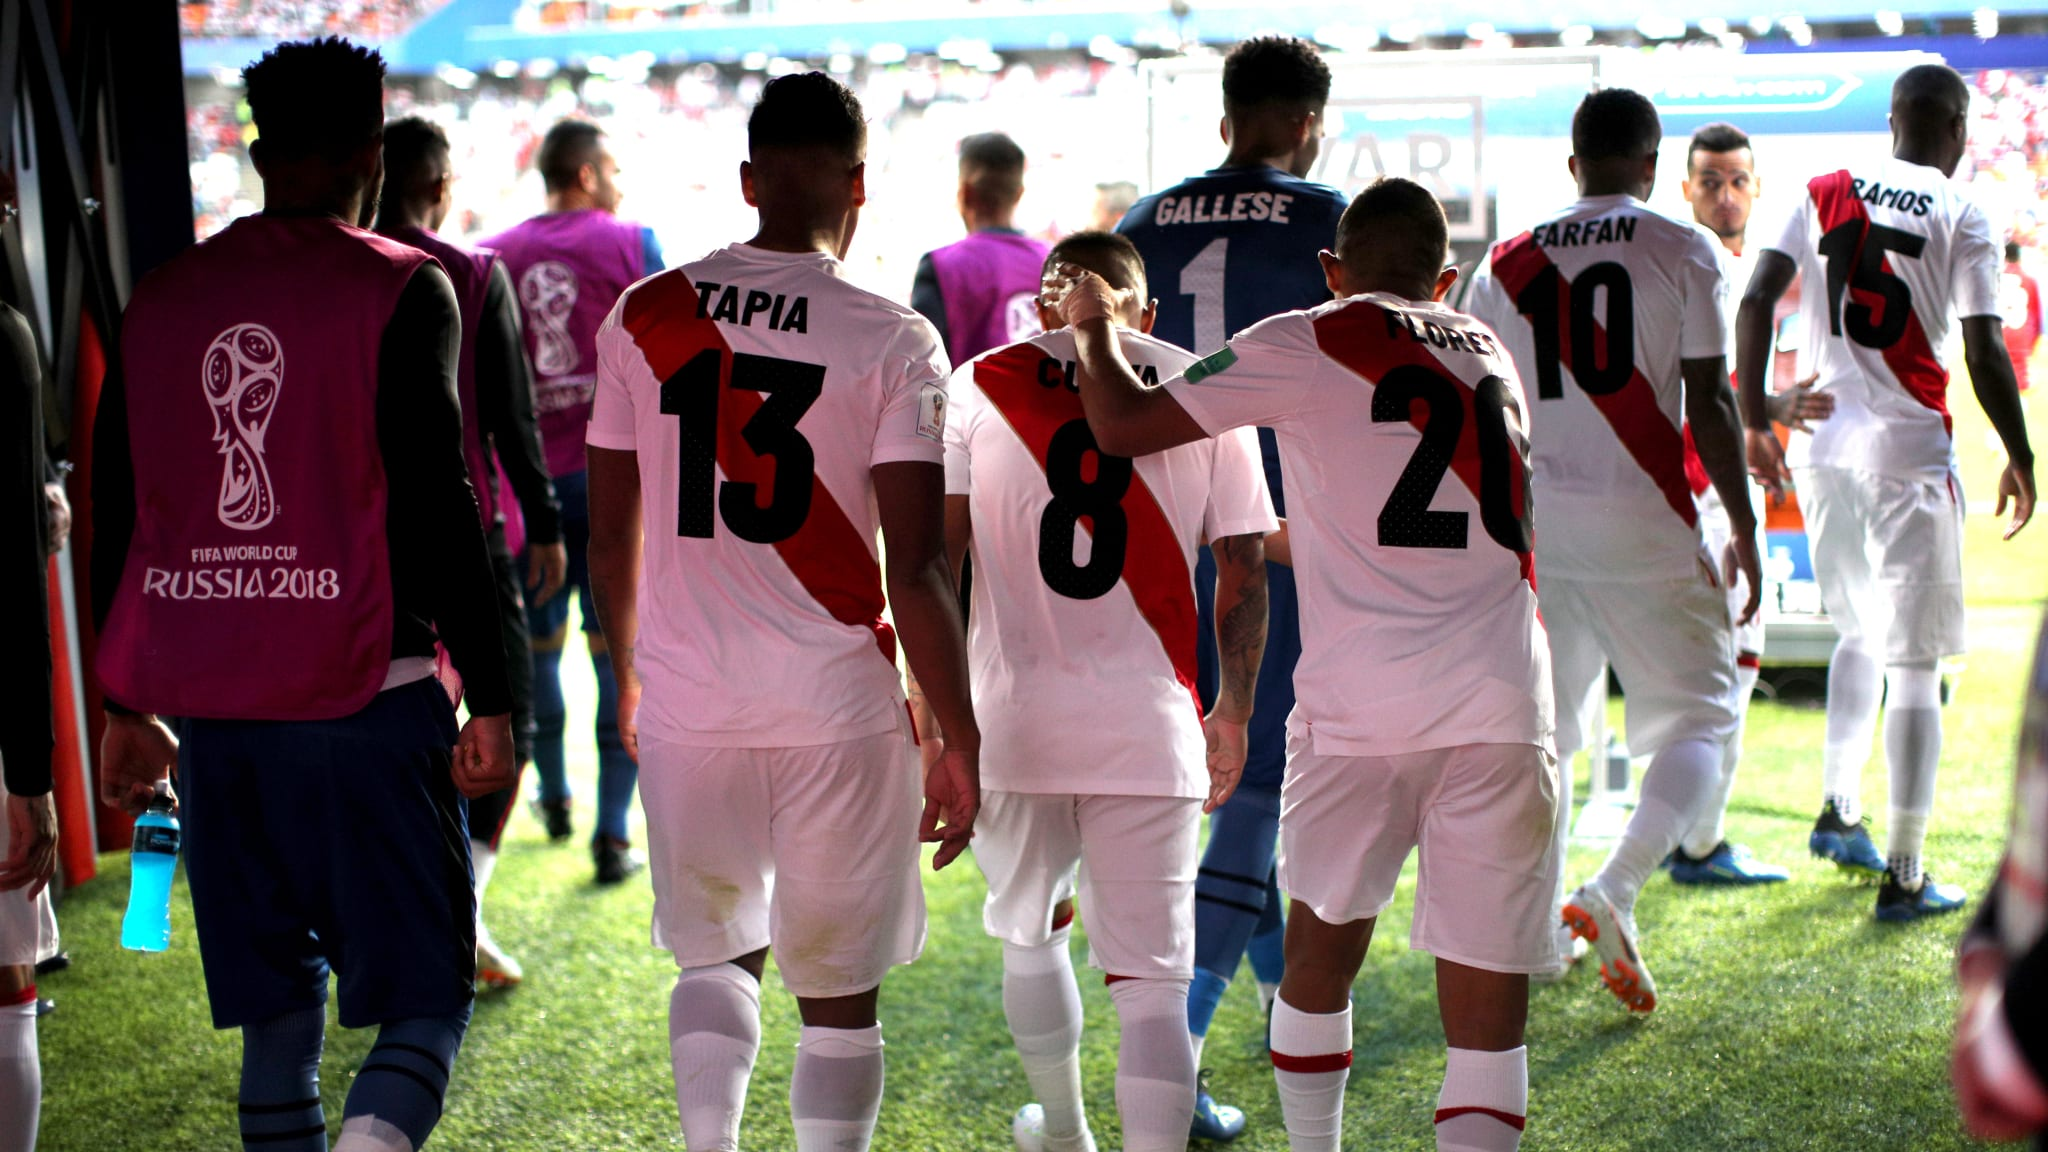 The Peru team walk out to the pitch   Peru v Denmark: 2018 FIFA World Cup Russia